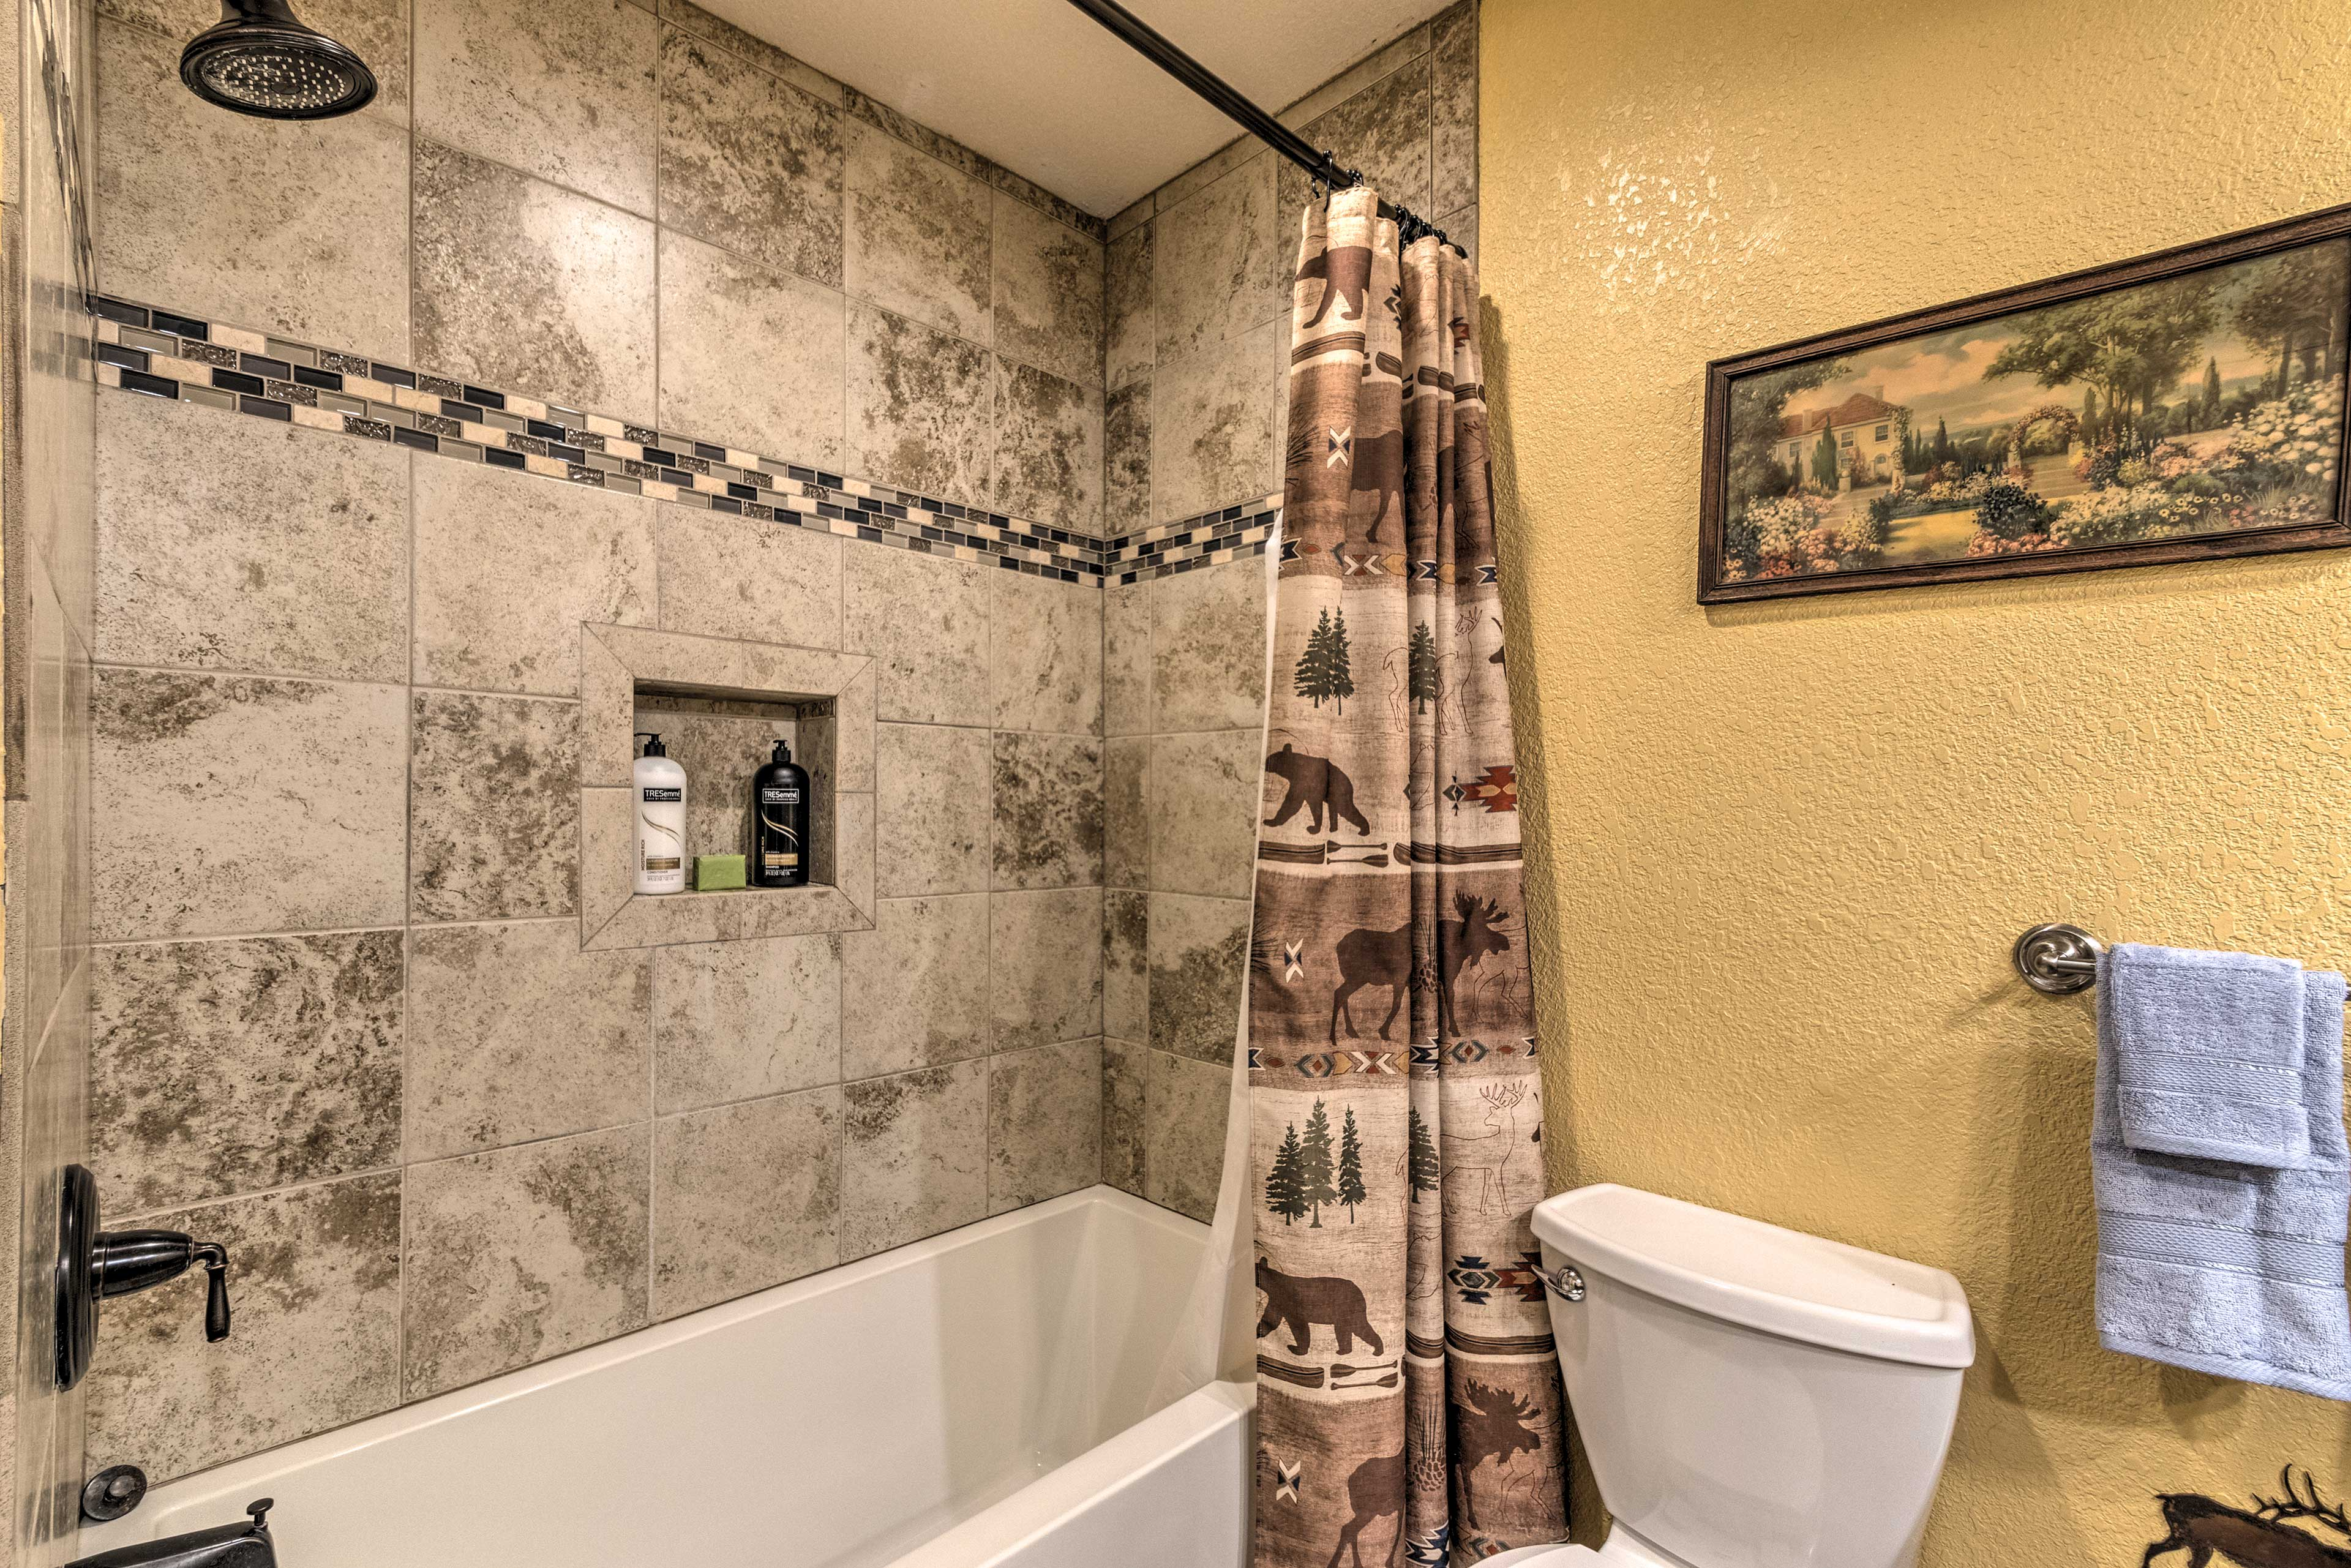 Rinse off in the shower/tub combo before crawling under the covers.